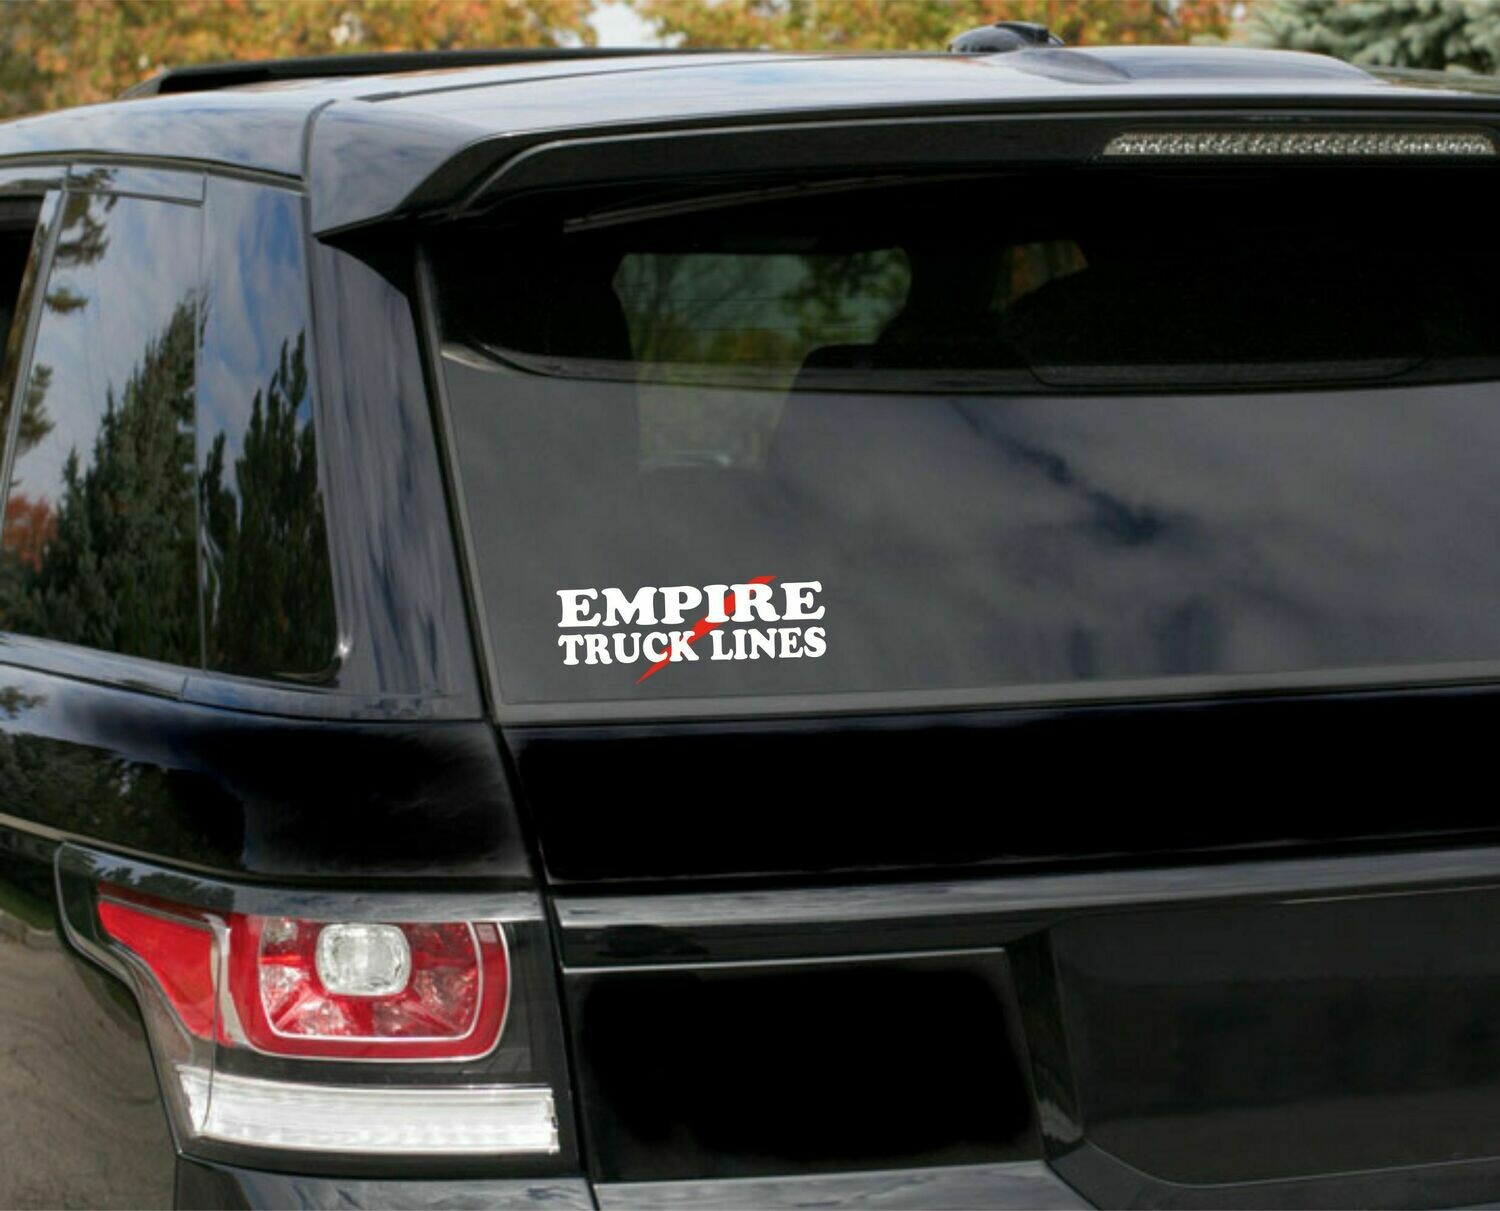 Empire Trucking Car Decal